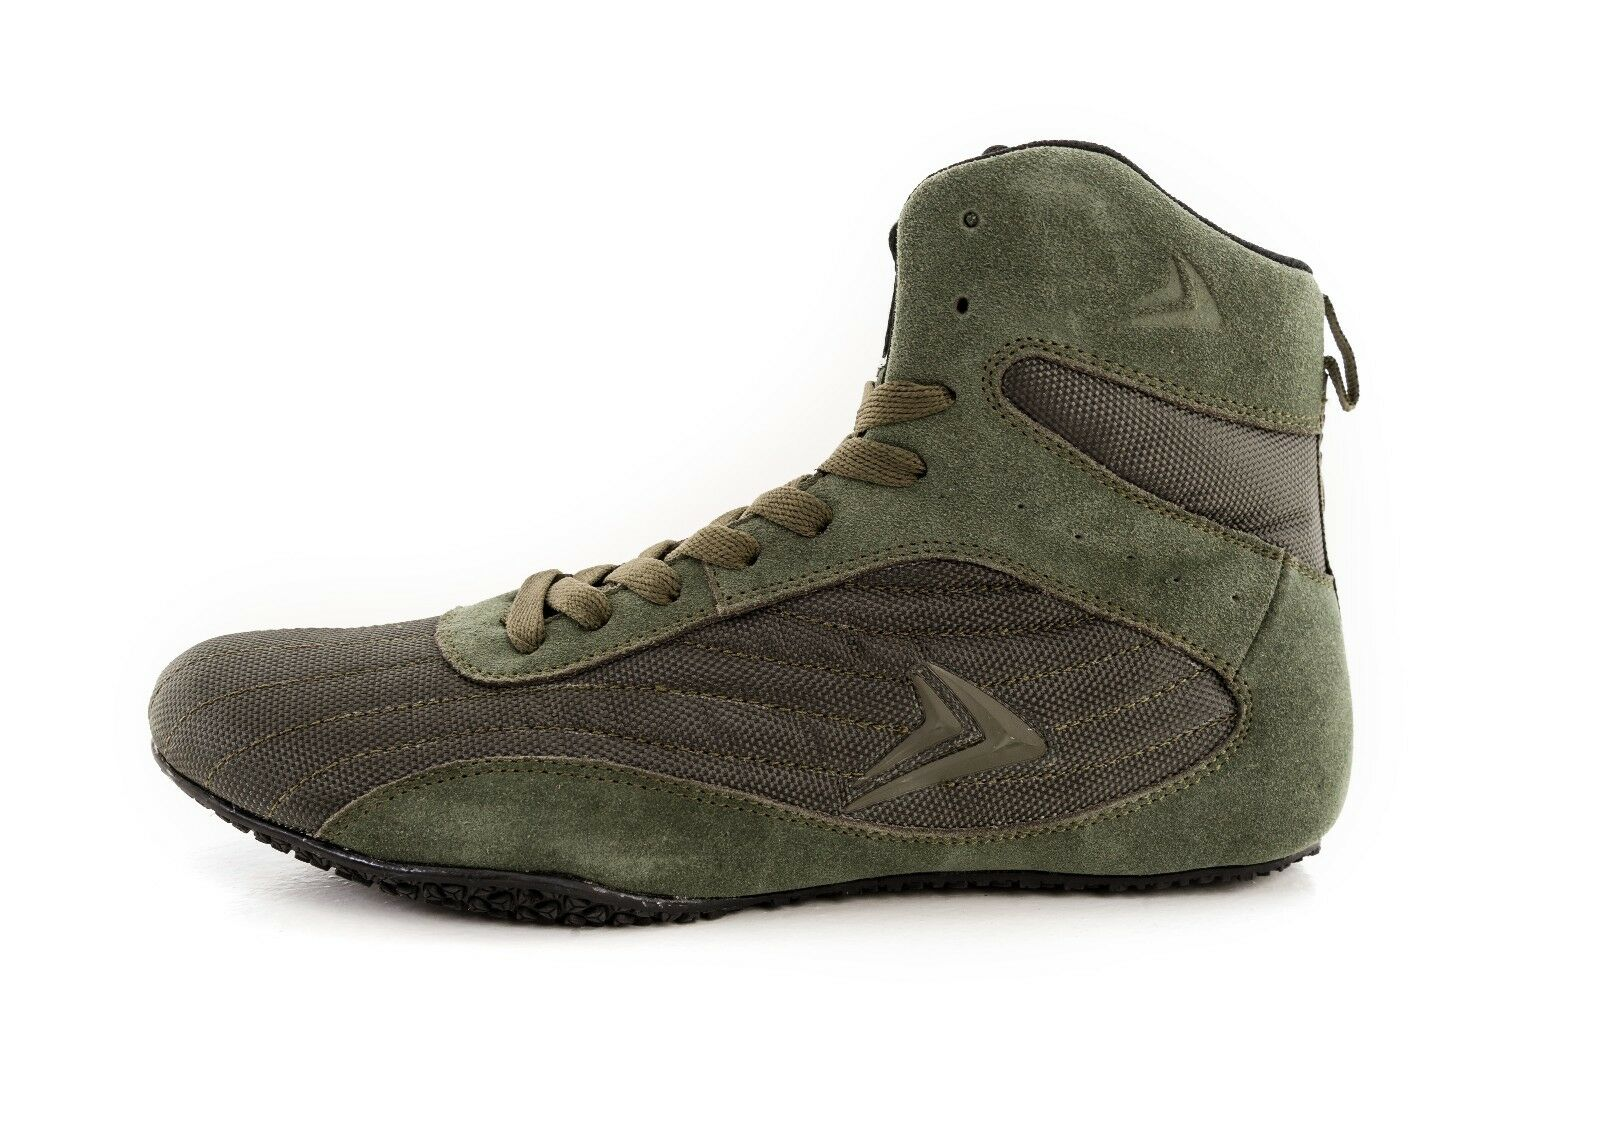 PIMD Khaki X-Core V2 Gym Boots - - - Hightop shoes Weight Lifting Fitness Workout 41d215